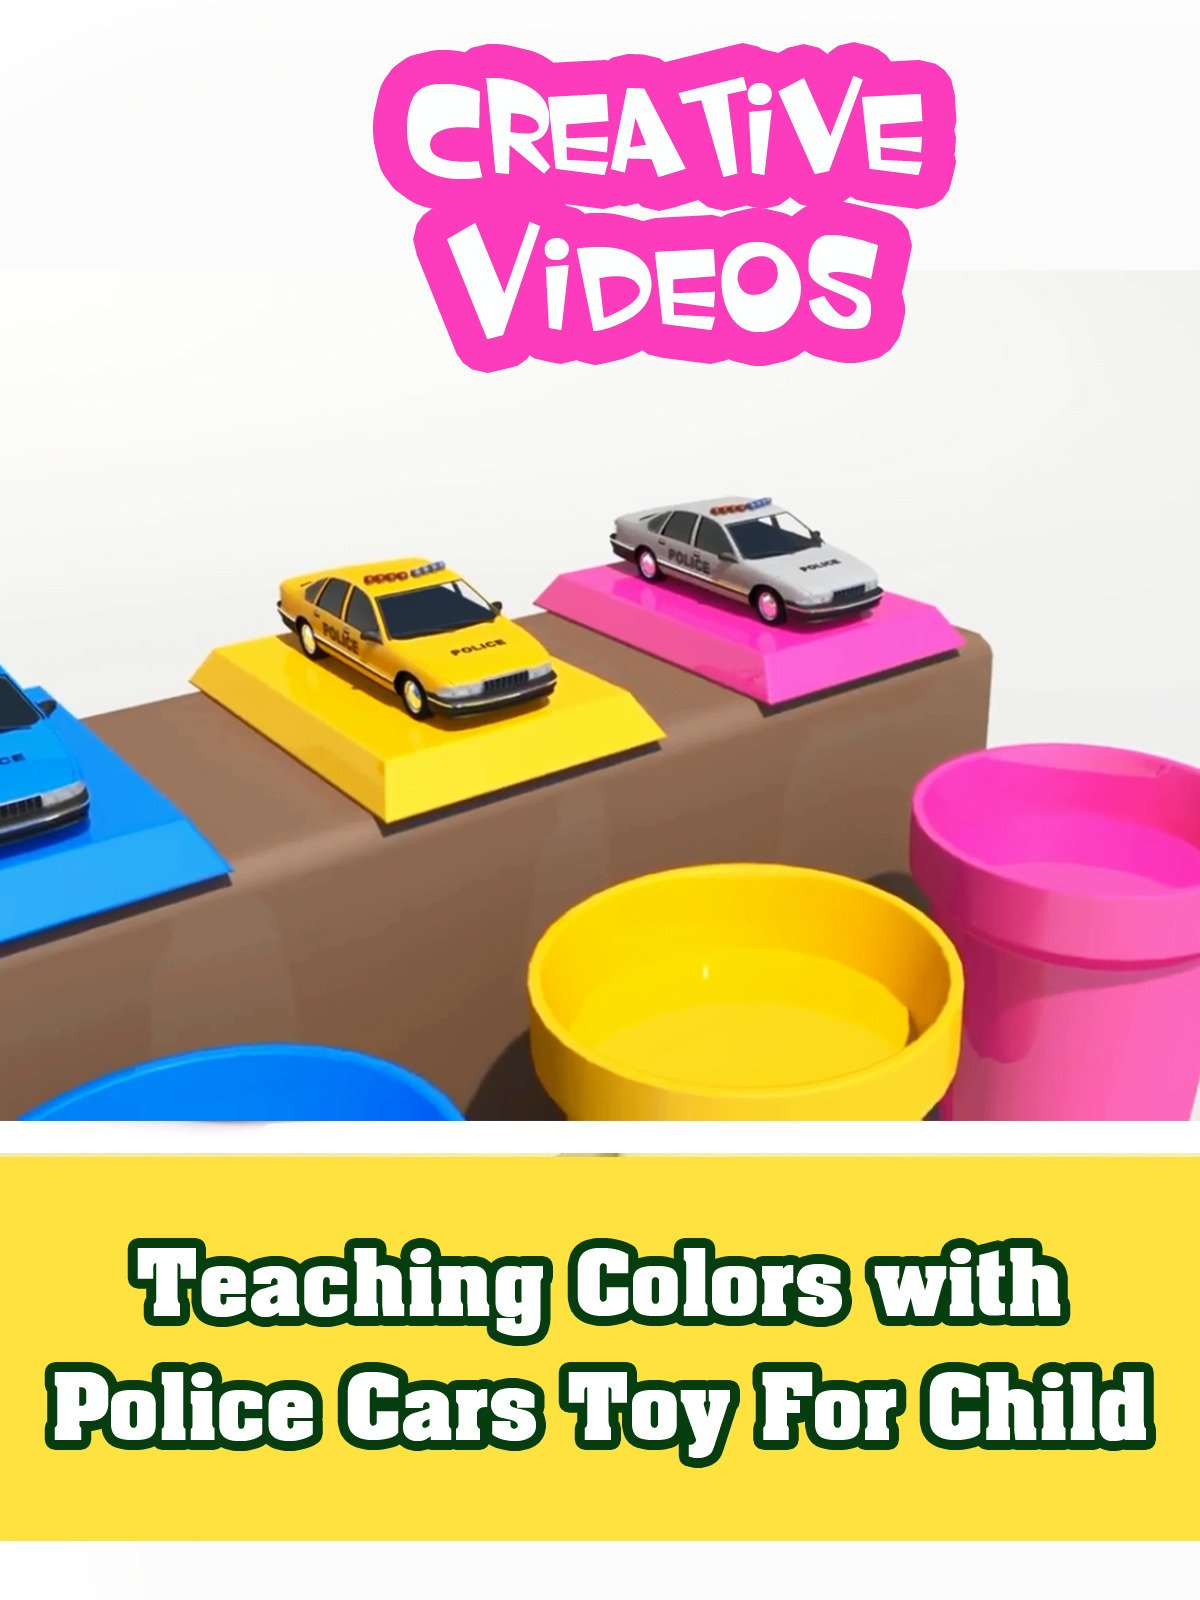 Teaching Colors with Police Cars Toy For Child